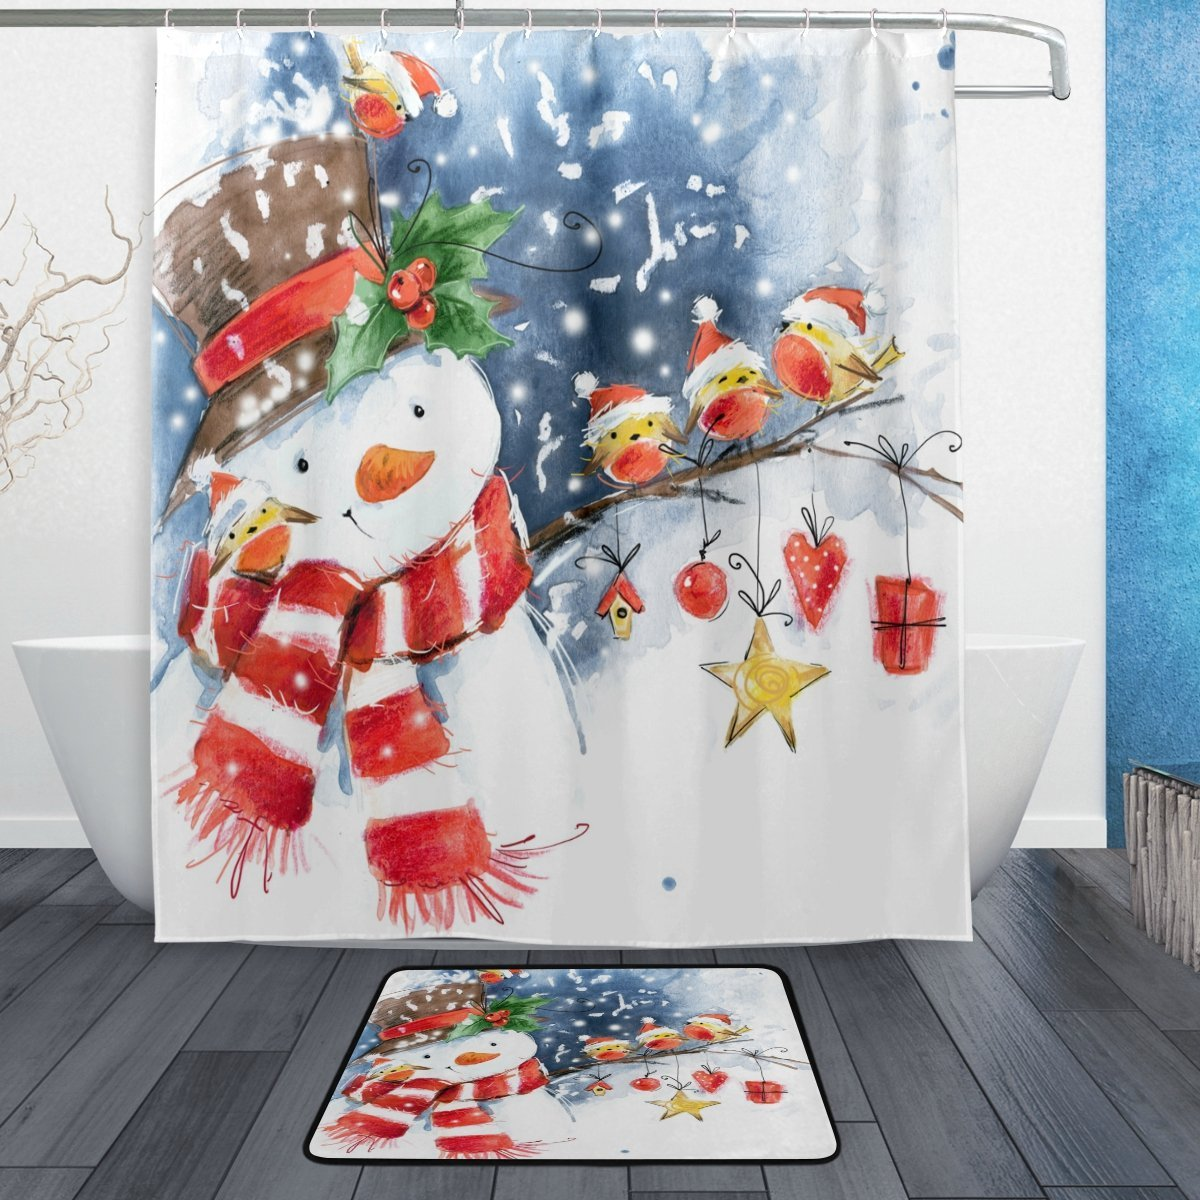 Snowman Bathroom Sets Buy Snowman Christmas Winter Holiday Shower Curtain Hooks Set Of